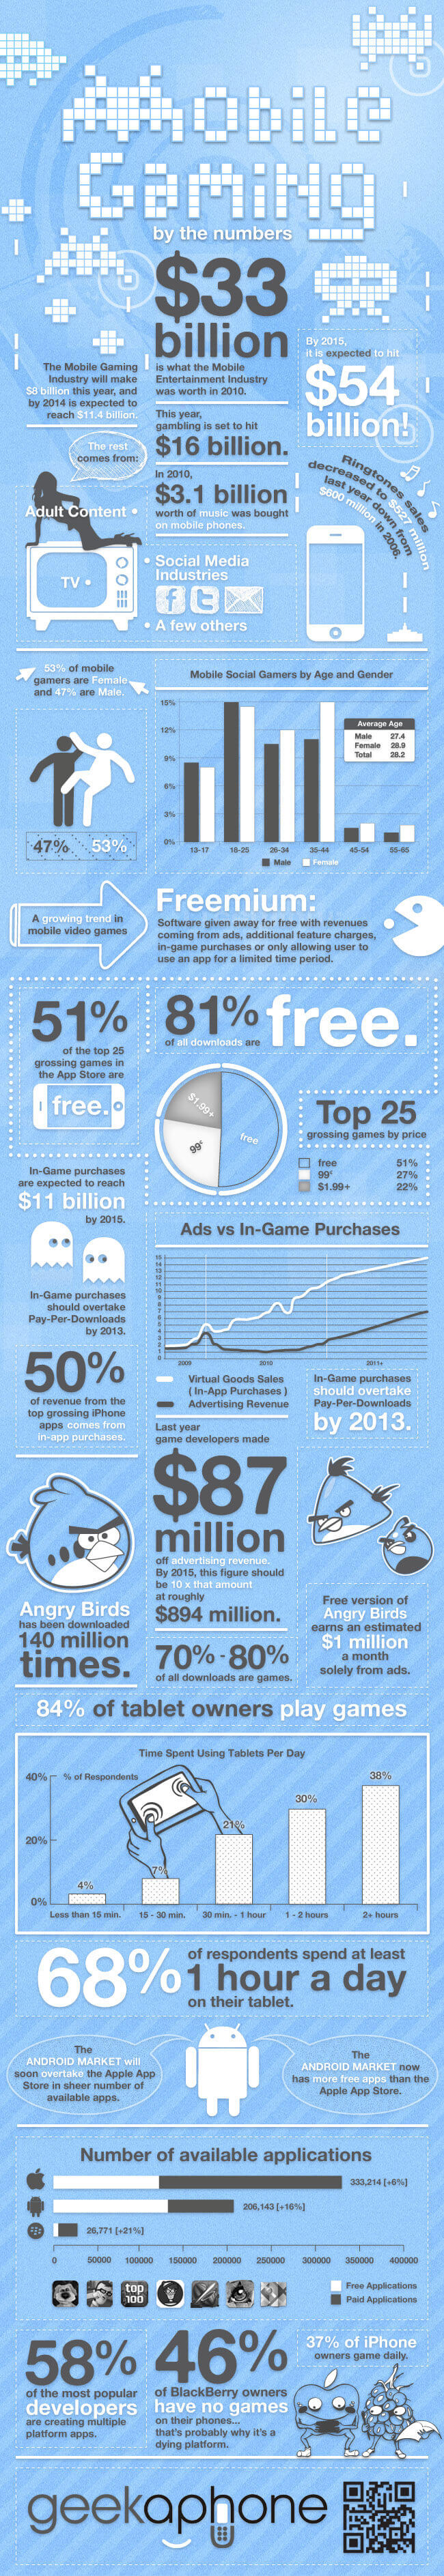 Mobile gaming stats